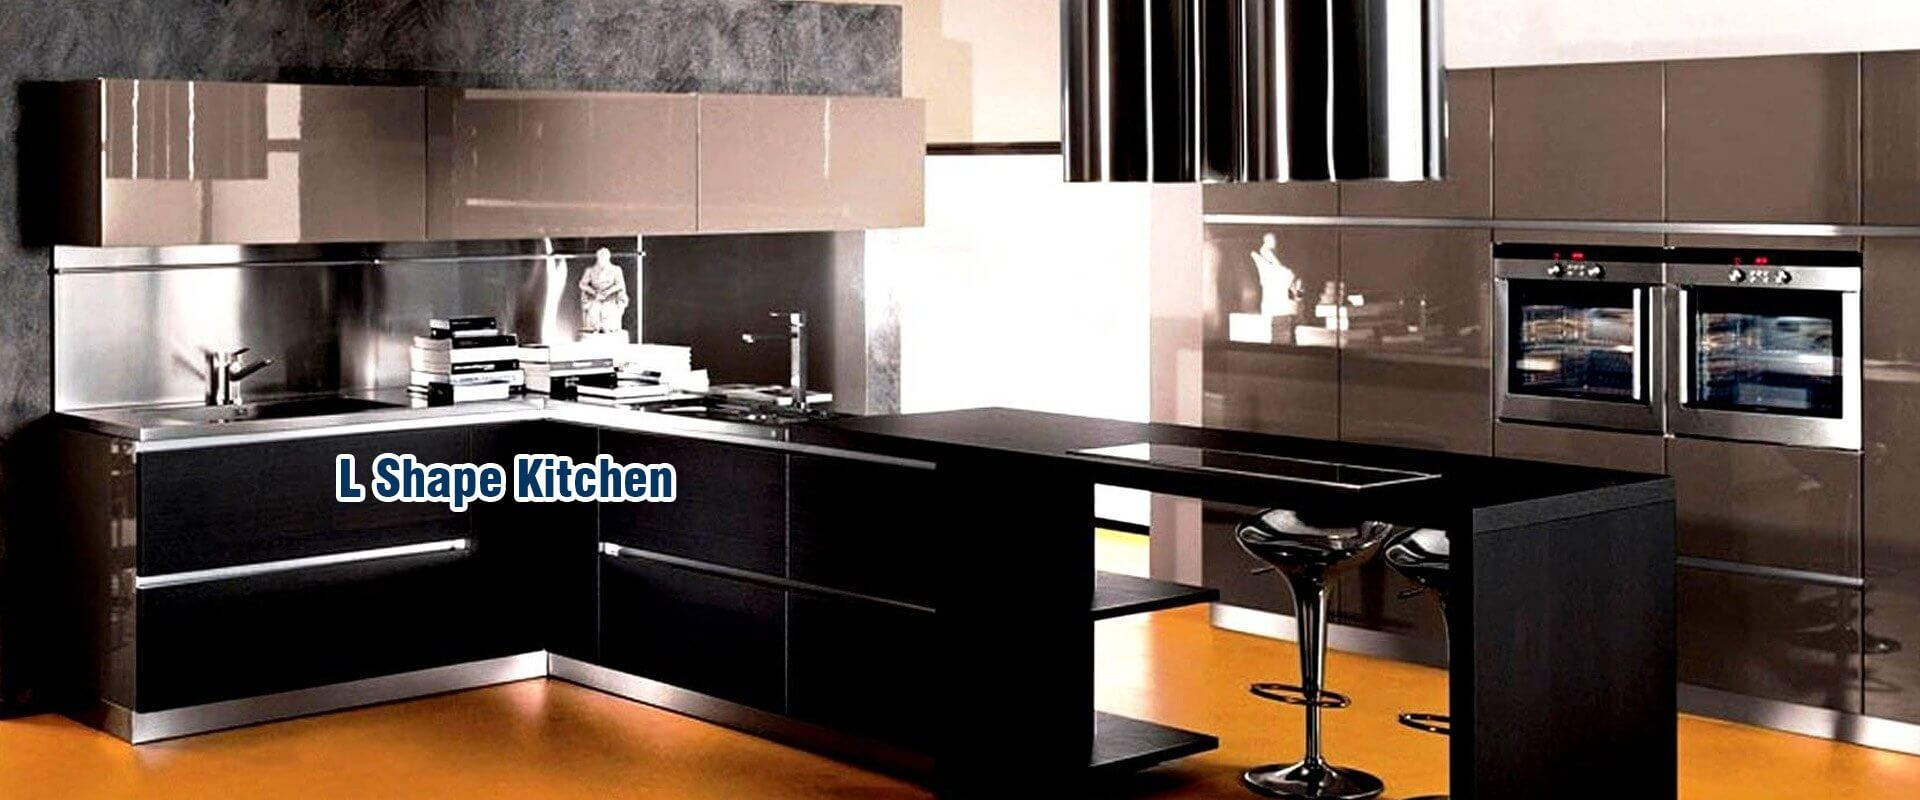 L shape kitchen for Italian modular kitchen